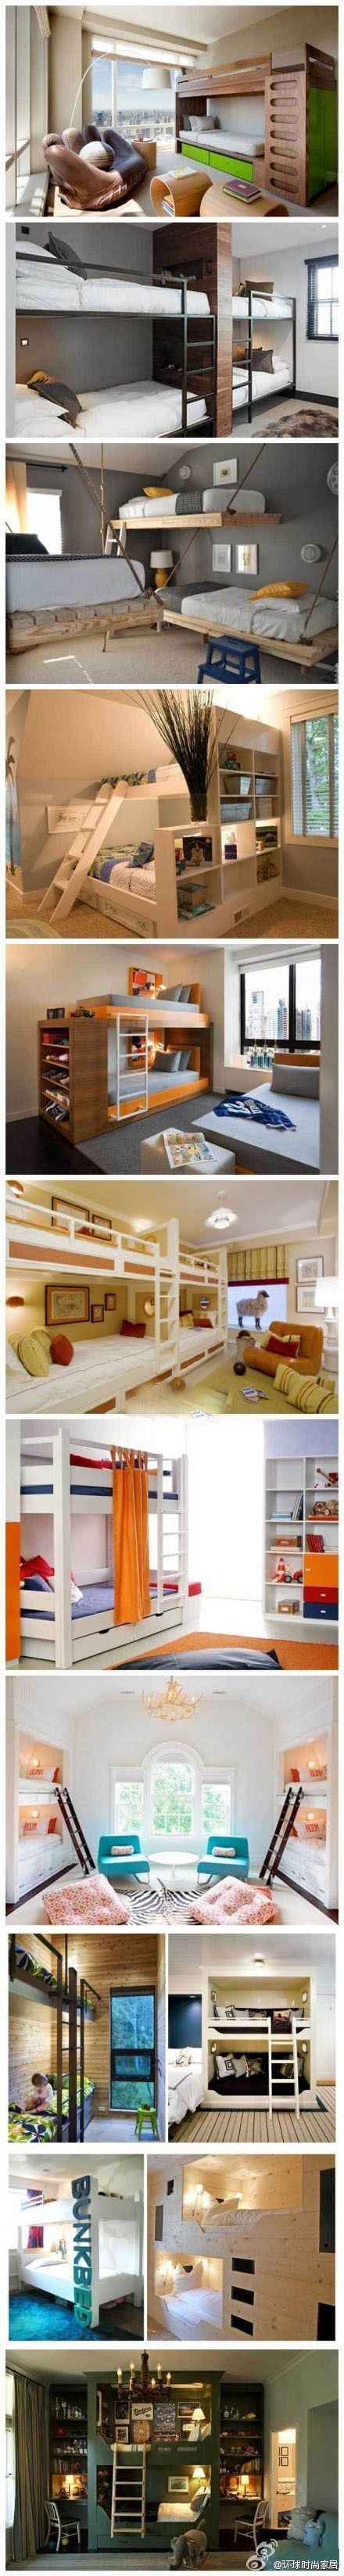 25 best ideas about double deck bed on pinterest double for Double deck bed ideas